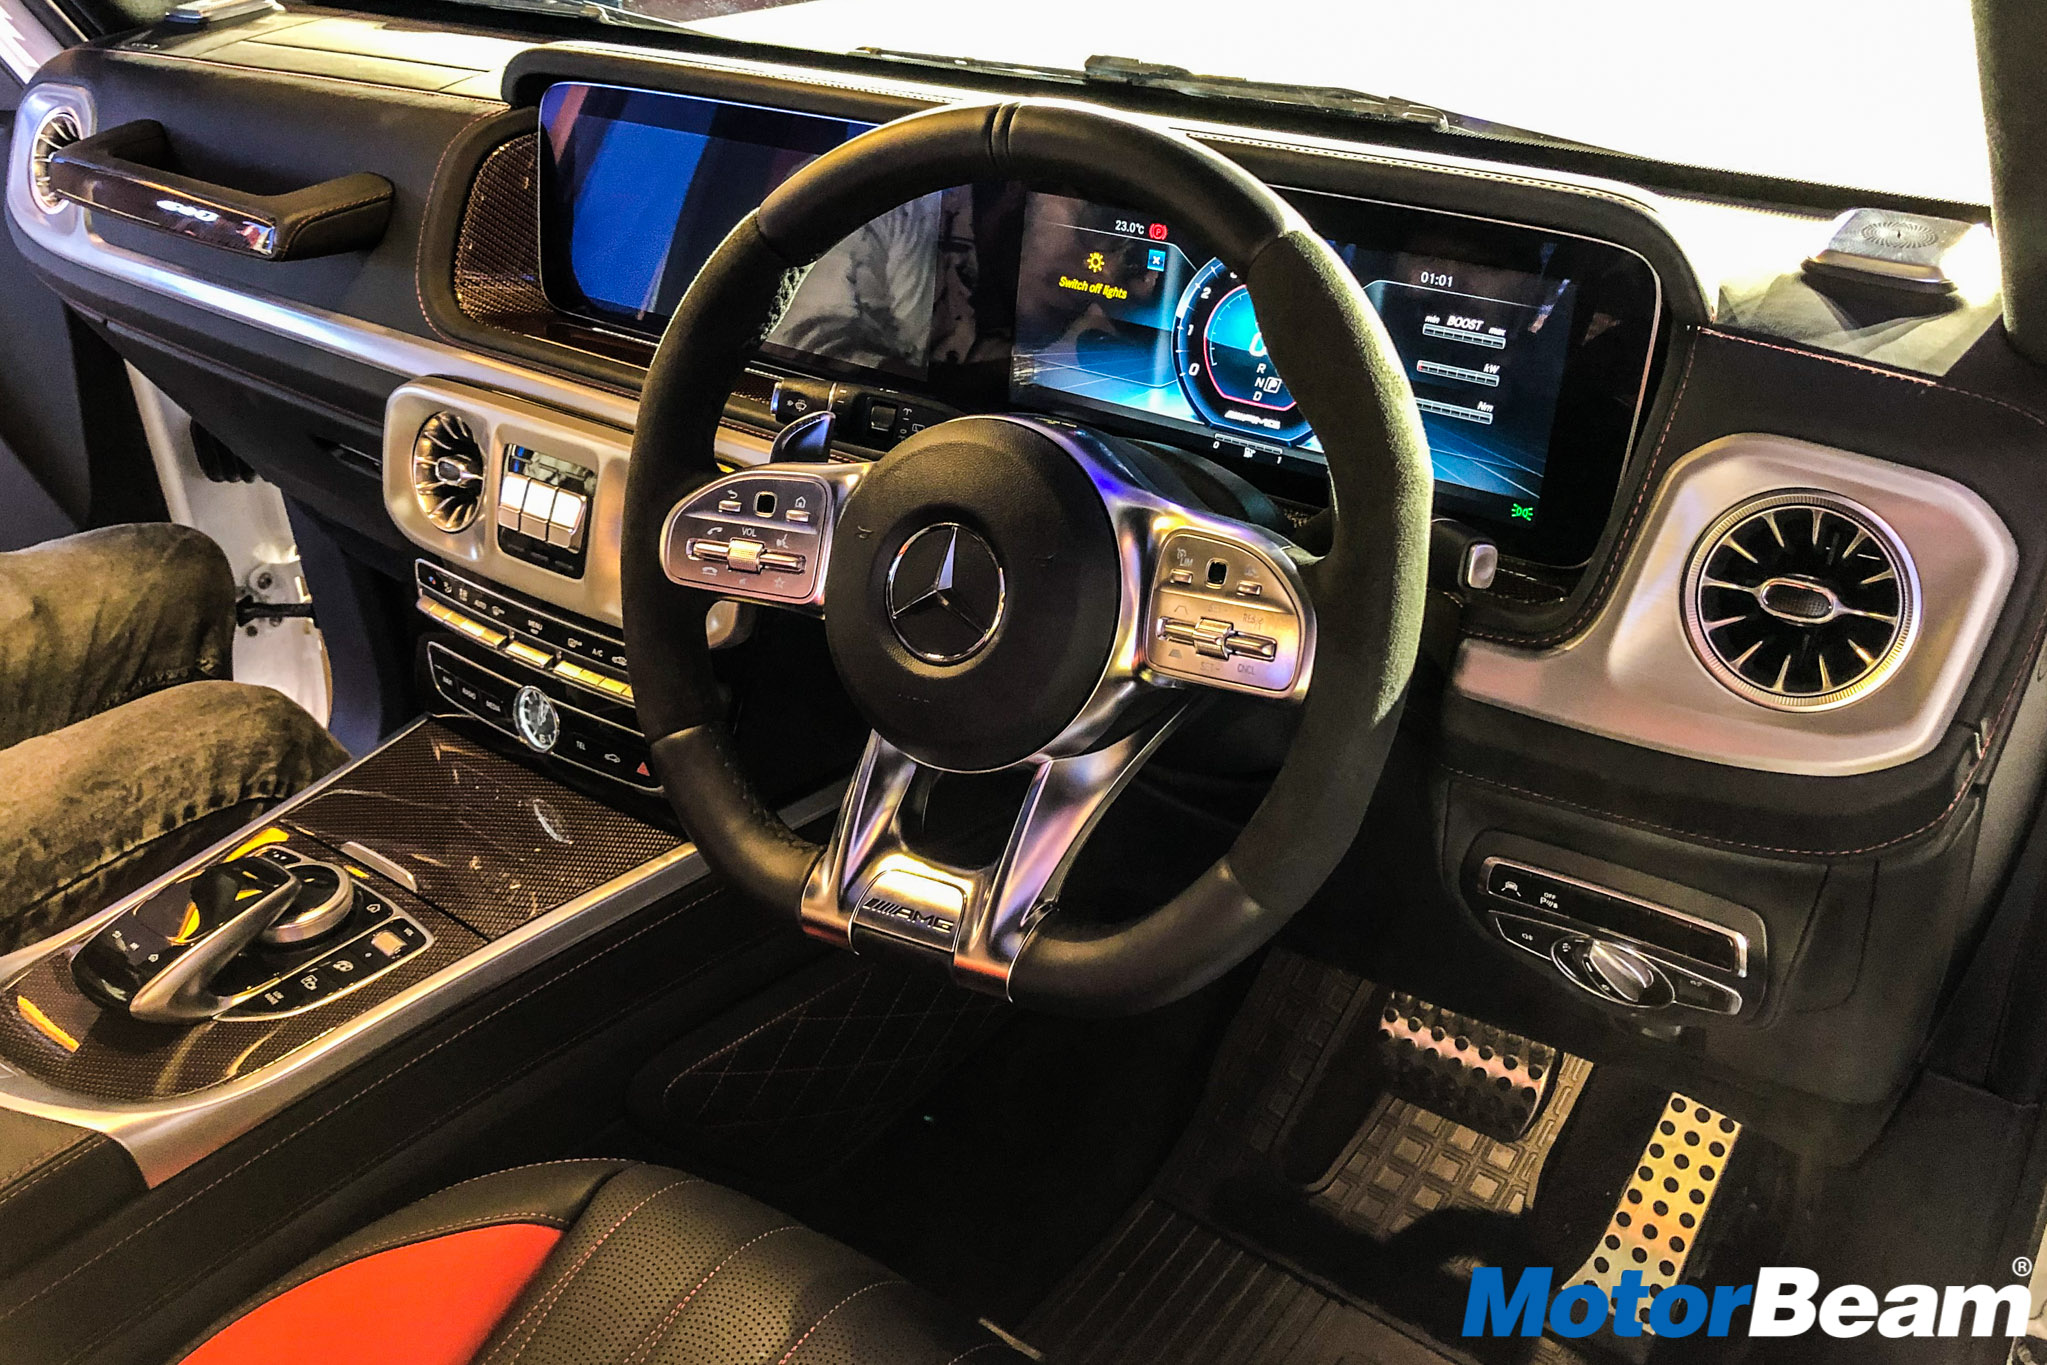 2019 Mercedes Amg G63 Price Is Rs 2 19 Crores Motorbeam